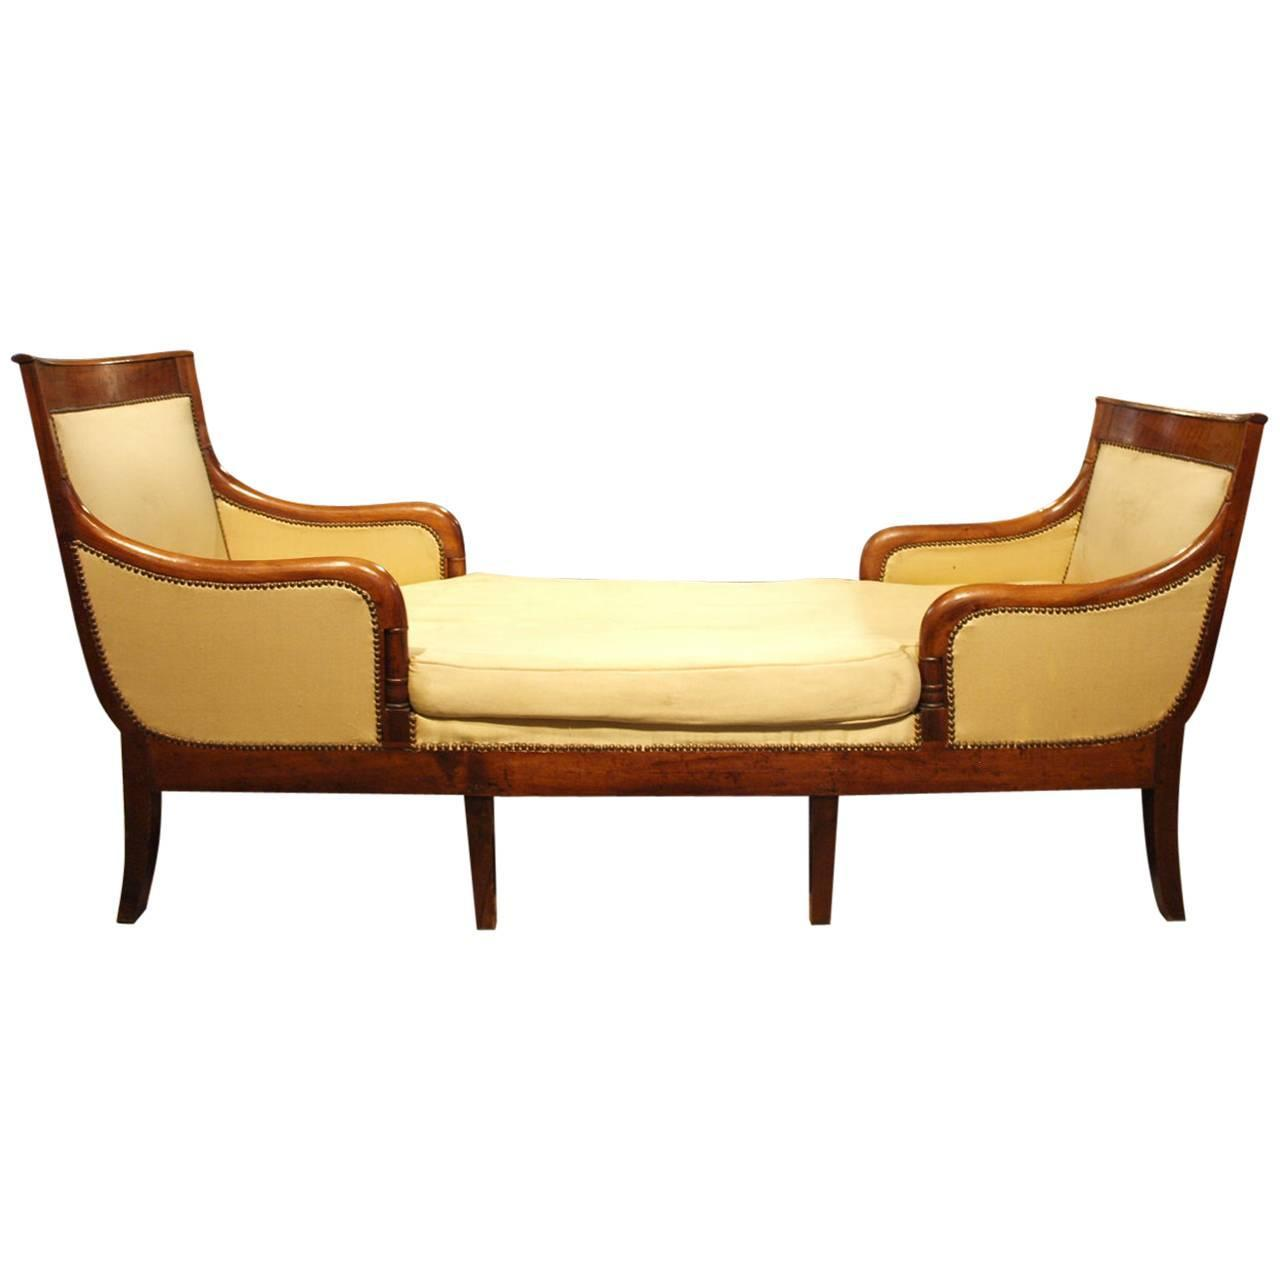 French early 19th century directoire period chaise longue for Chaise longue daybed